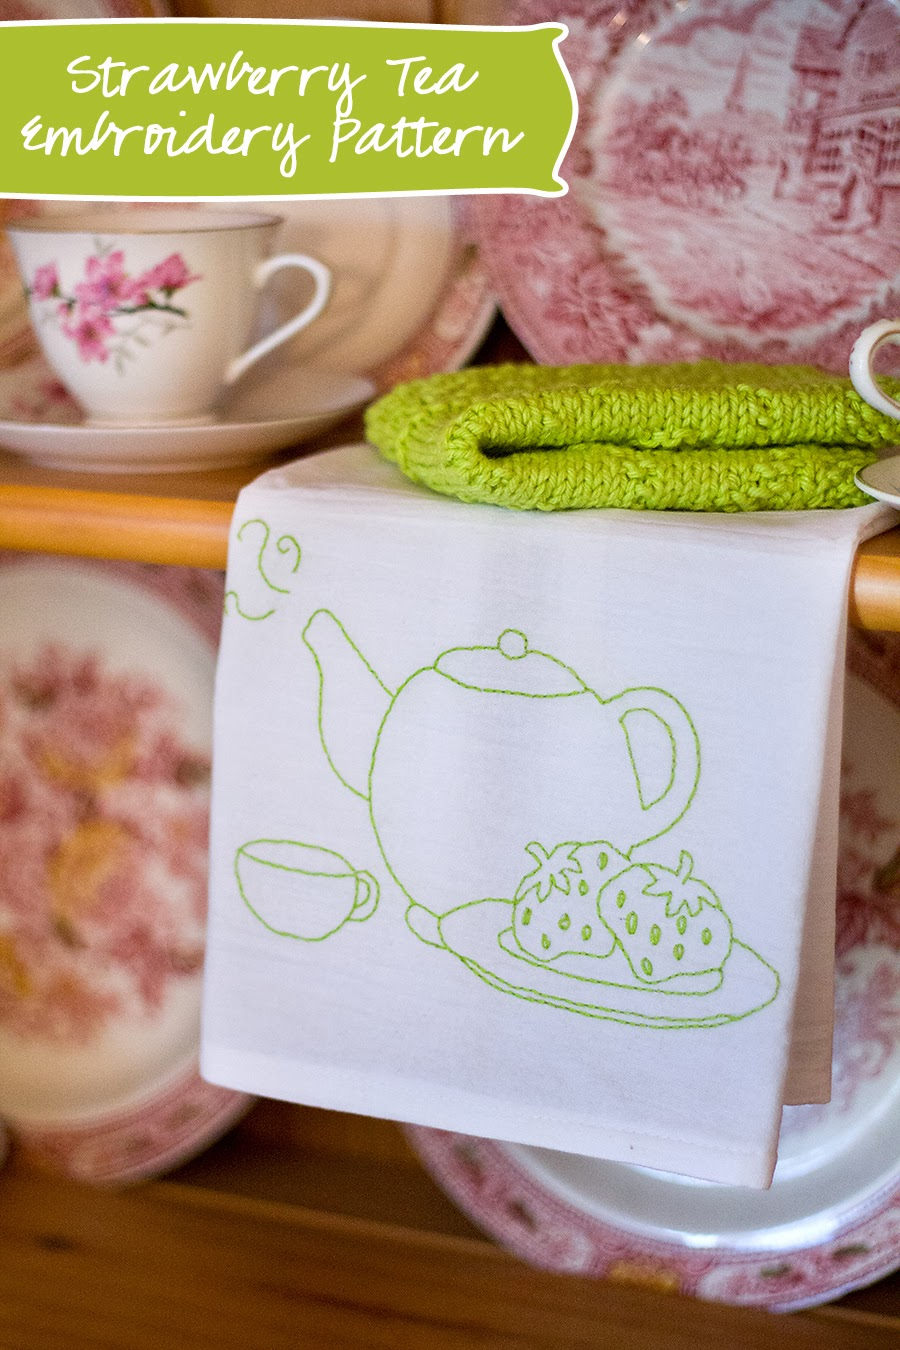 https://dl.dropboxusercontent.com/u/74477577/Strawberry%20Tea%20Embroidery%20Pattern.pdf